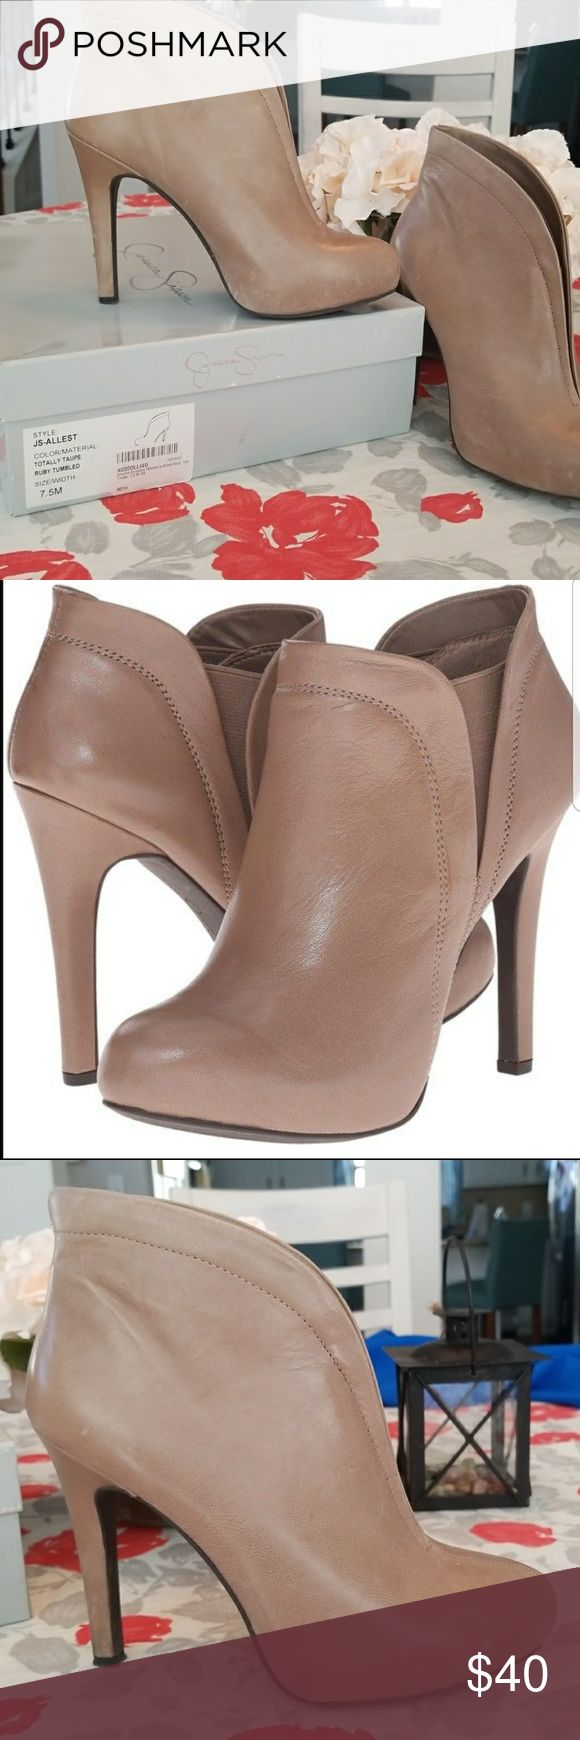 Jessica Simpson taupe Allest heeled ankle bootie Taupe Jessica Simpson heel ankle booties. Only worn once. Soft leather shows a little lightening marks towards the bottom. Comes with original box. Jessica Simpson Shoes Ankle Boots & Booties